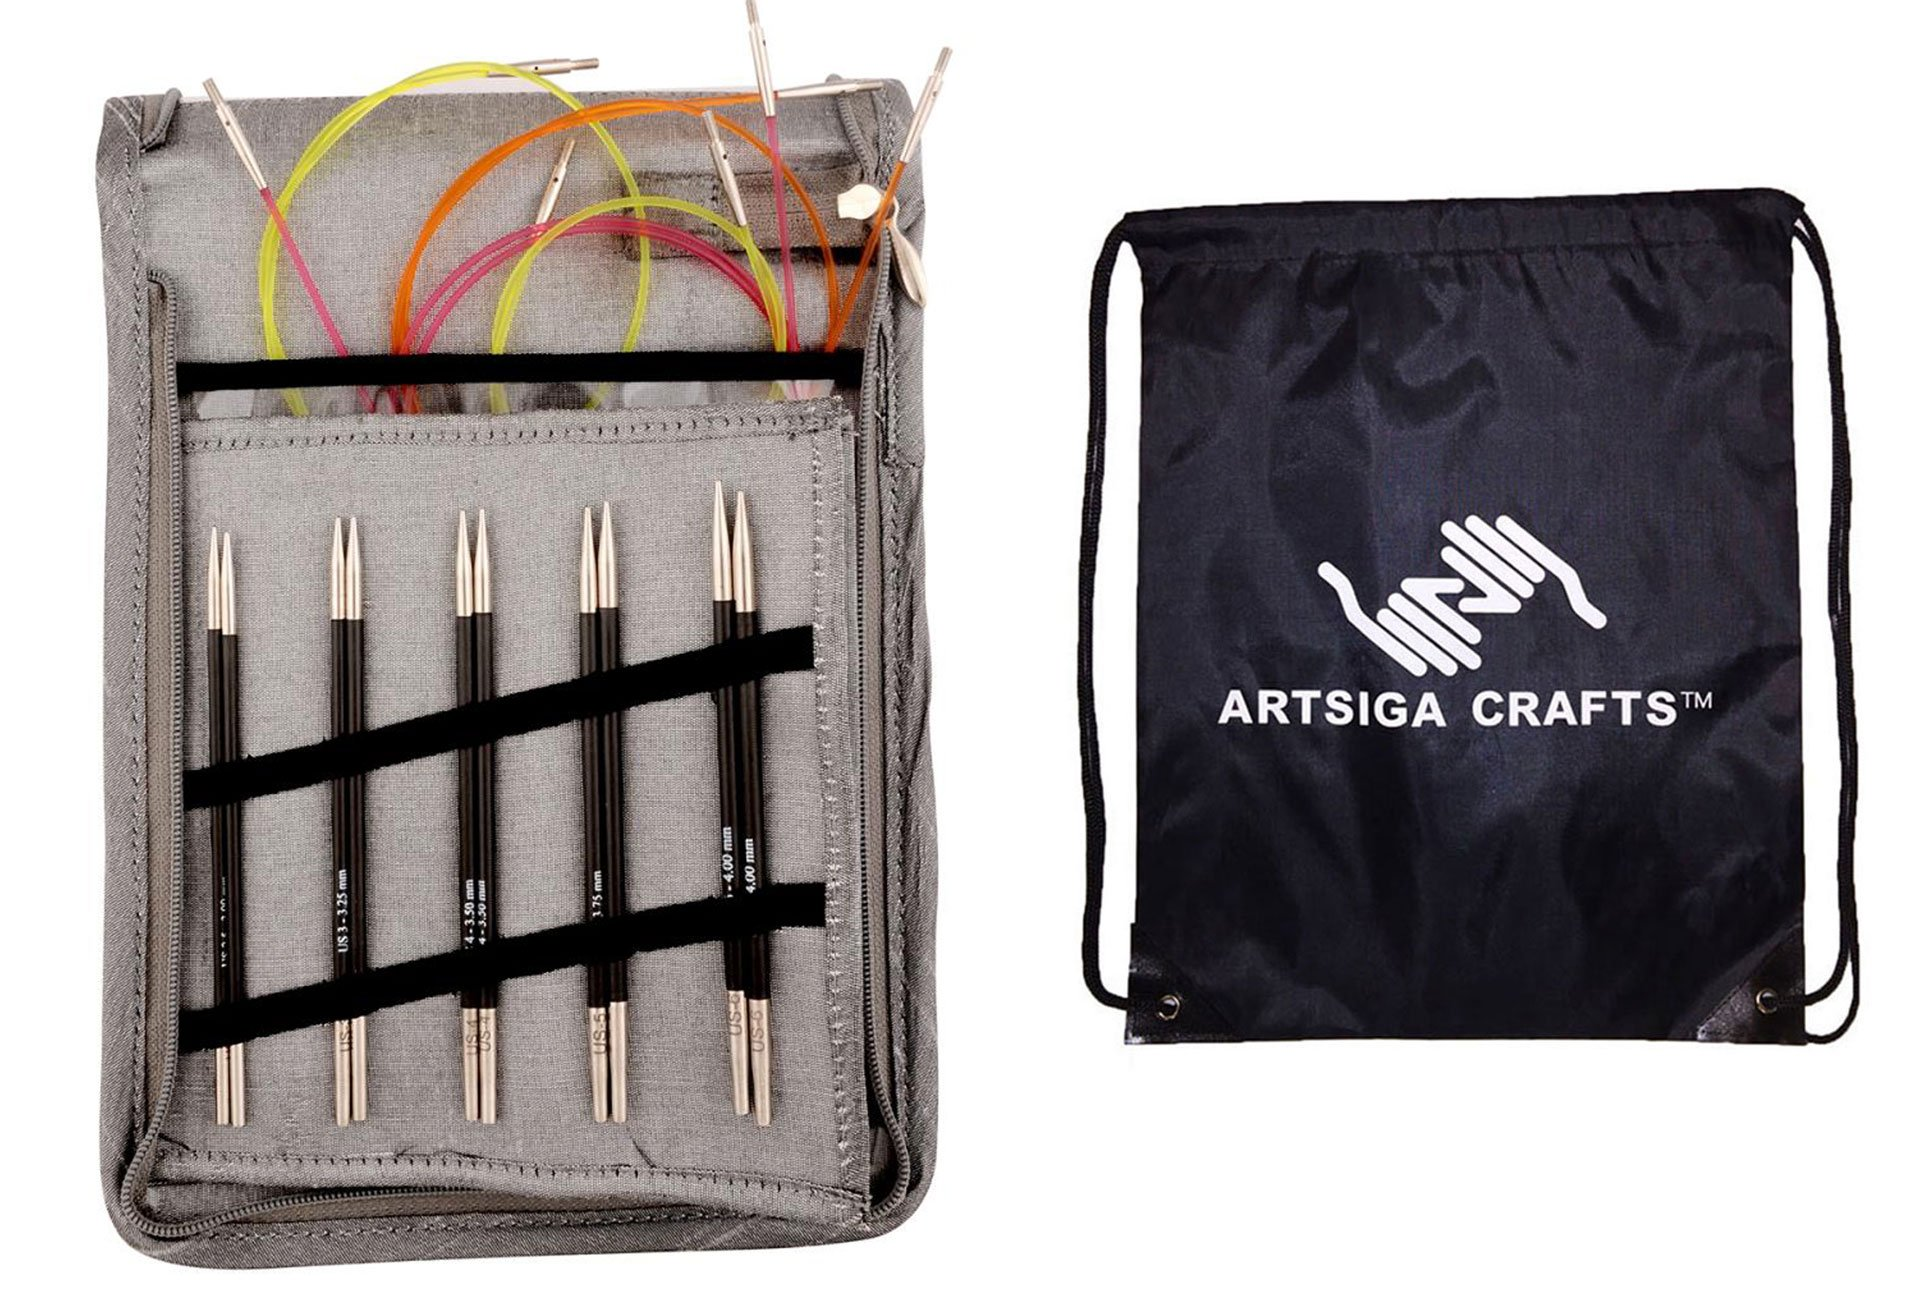 Knitter's Pride Knitting Needles Karbonz Deluxe Interchangeable Long Tip Set Bundle with 1 Artsiga Crafts Project Bag 110603